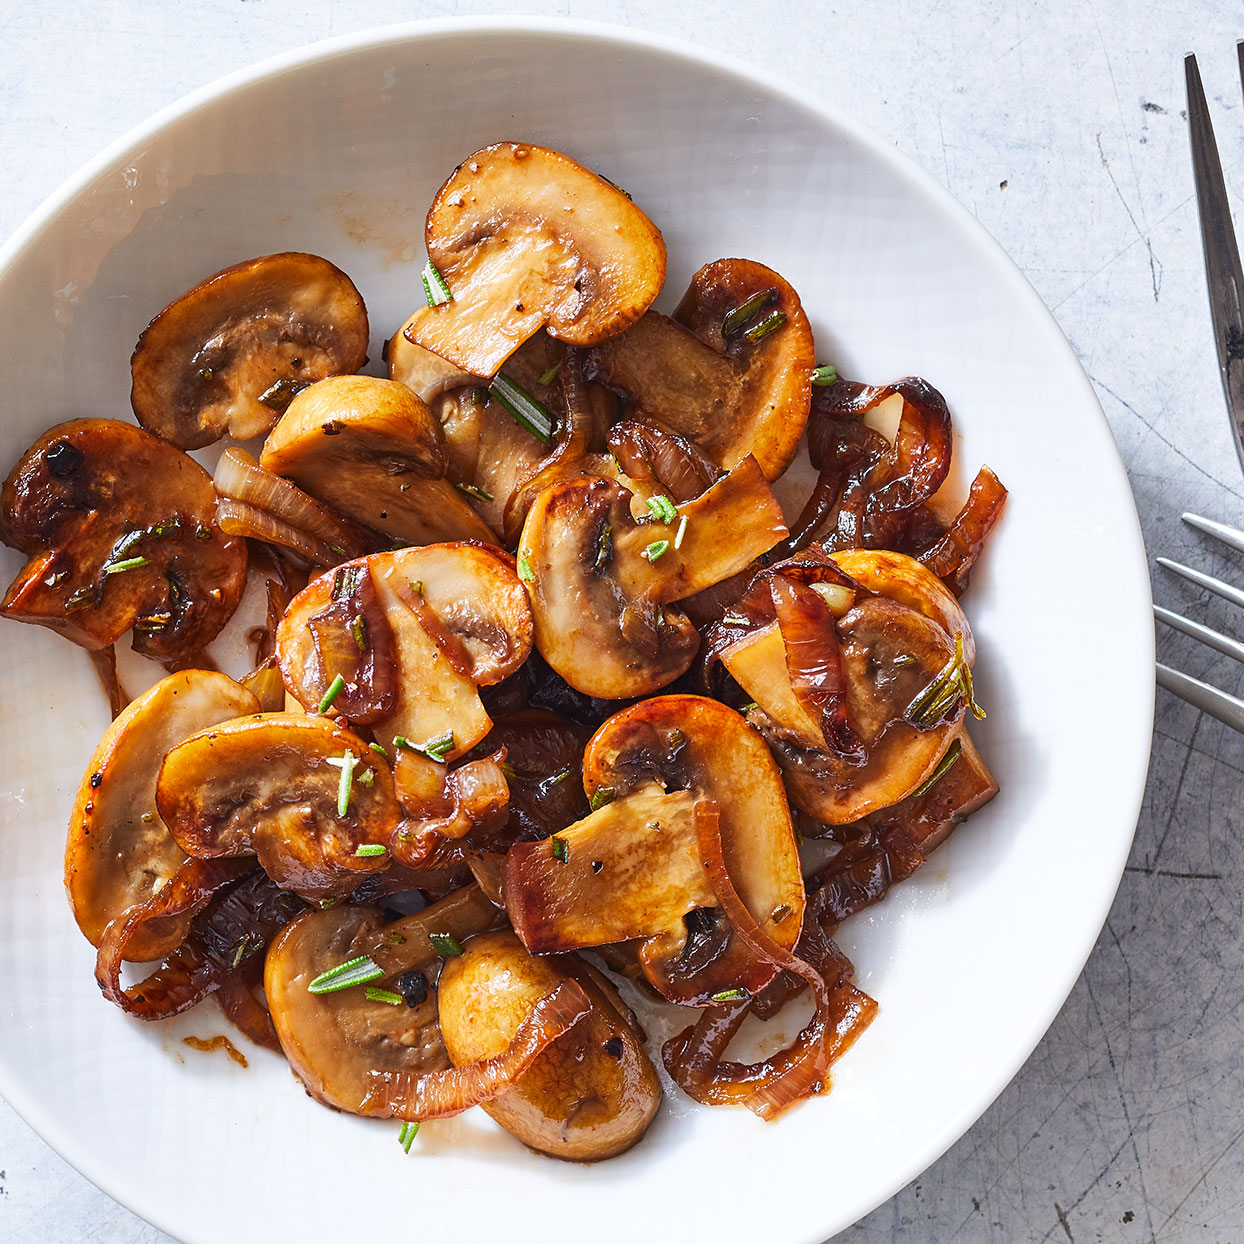 Sautéed Mushrooms with Sherry & Shallots